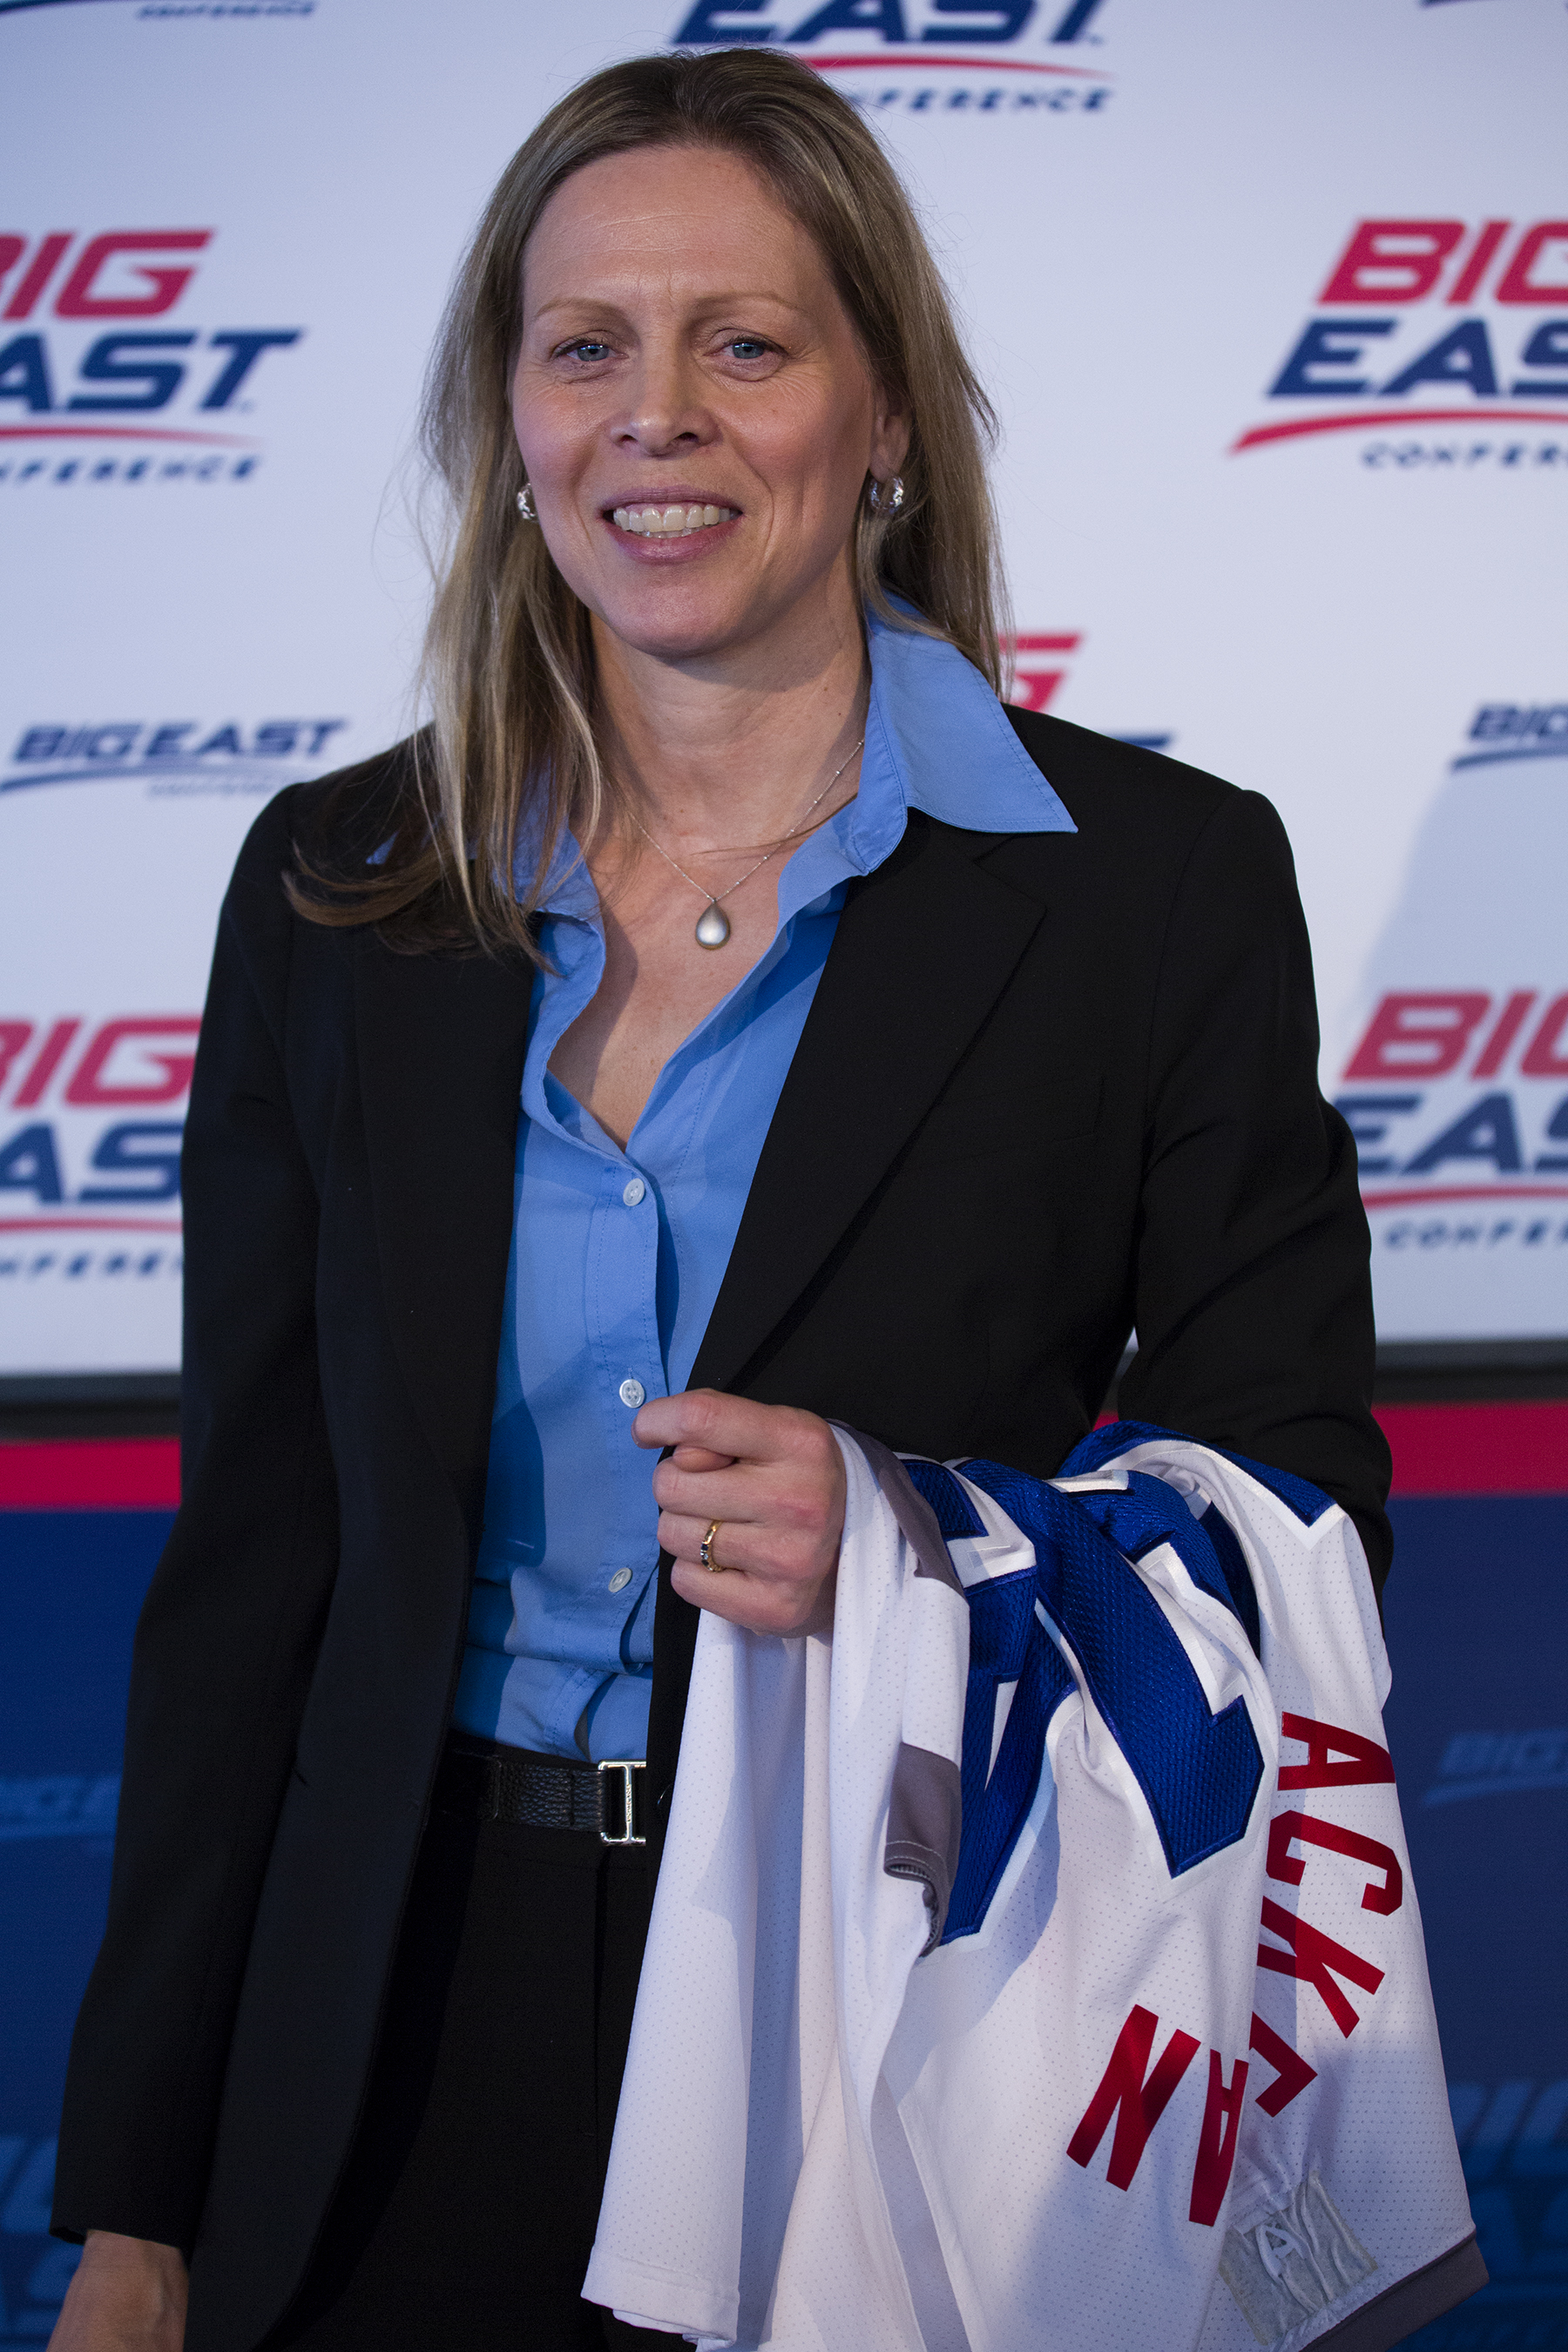 Big East Commissioner Val Ackerman stands with a jersey after a news conference during the Big East Conference NCAA college basketball media dayin New York, Wednesday, Oct. 16, 2013. (AP Photo/Craig Ruttle)